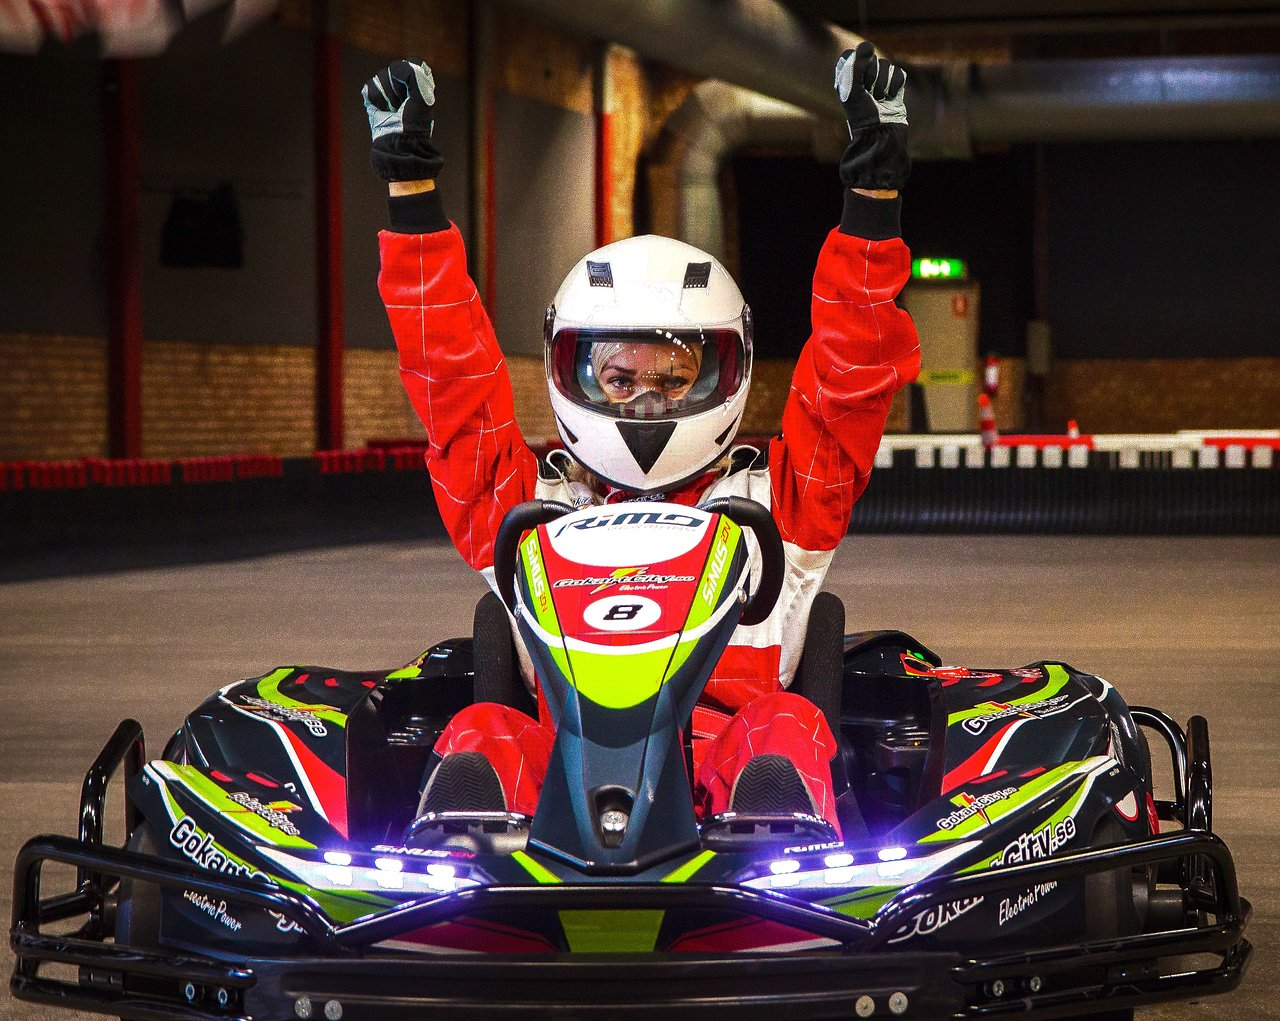 Gokartcity I Malmo Sweden Hours Address Tripadvisor